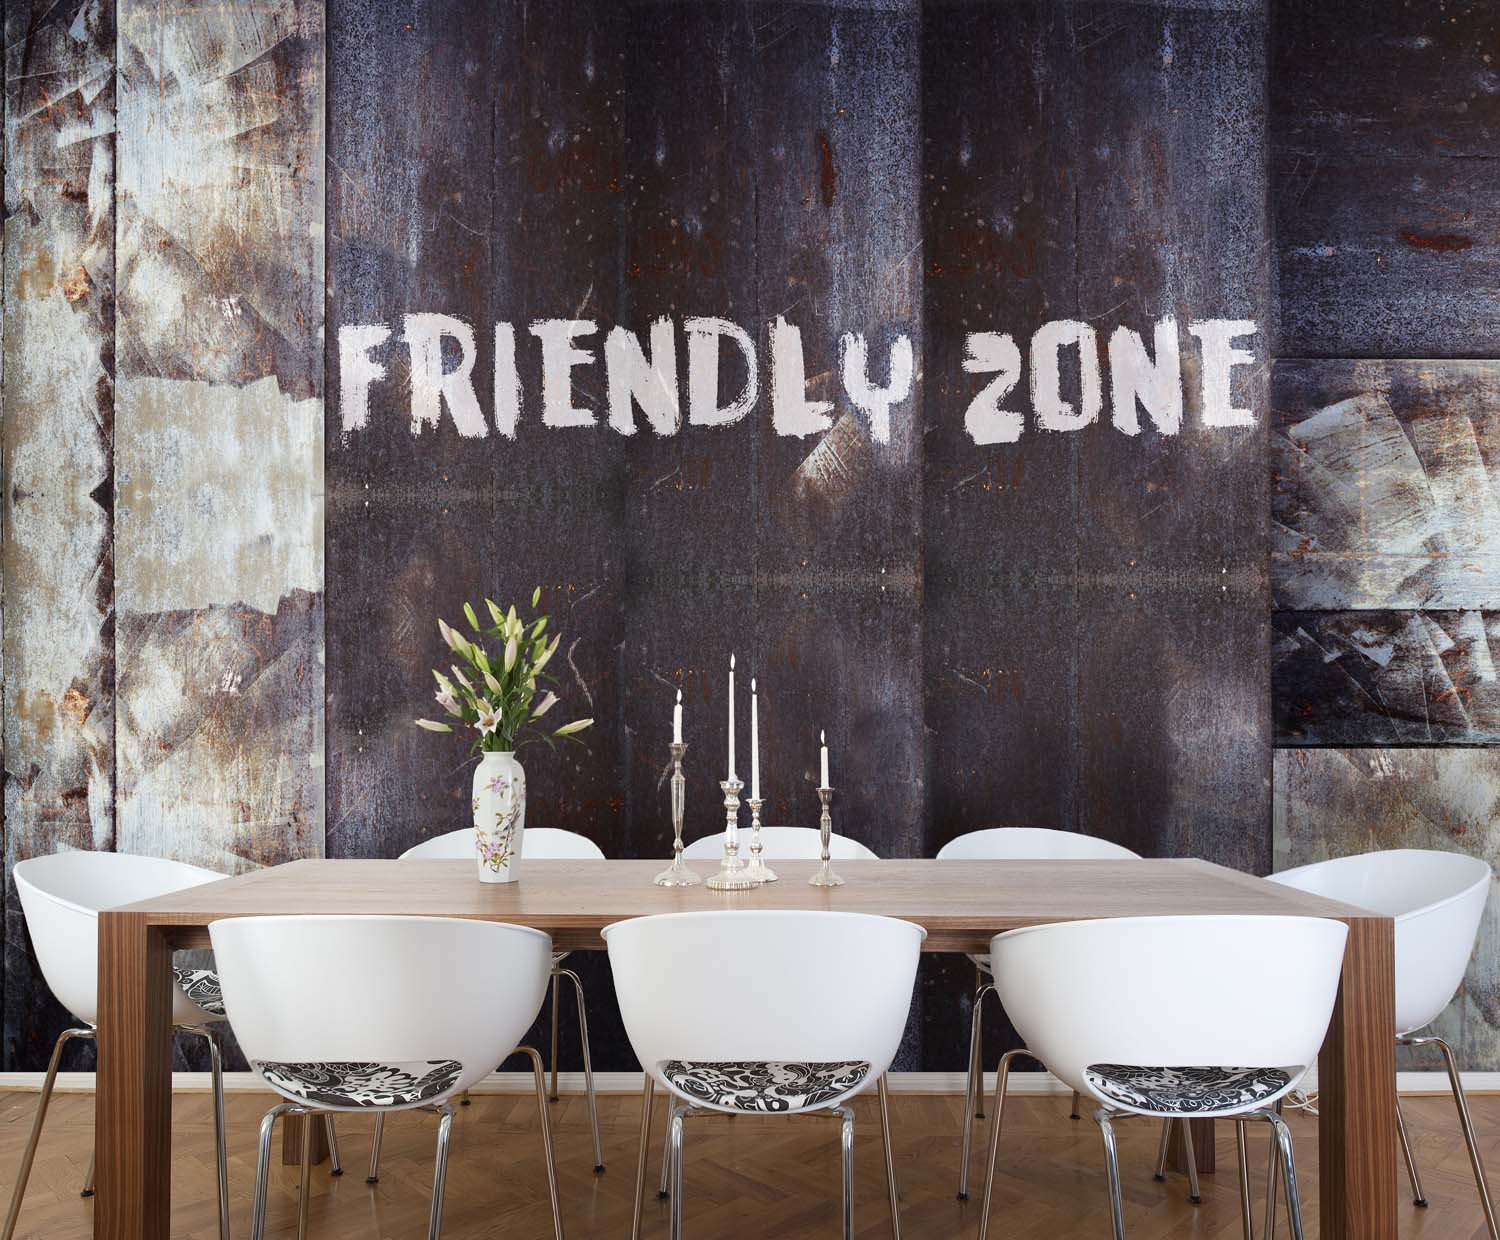 Friendly Zone